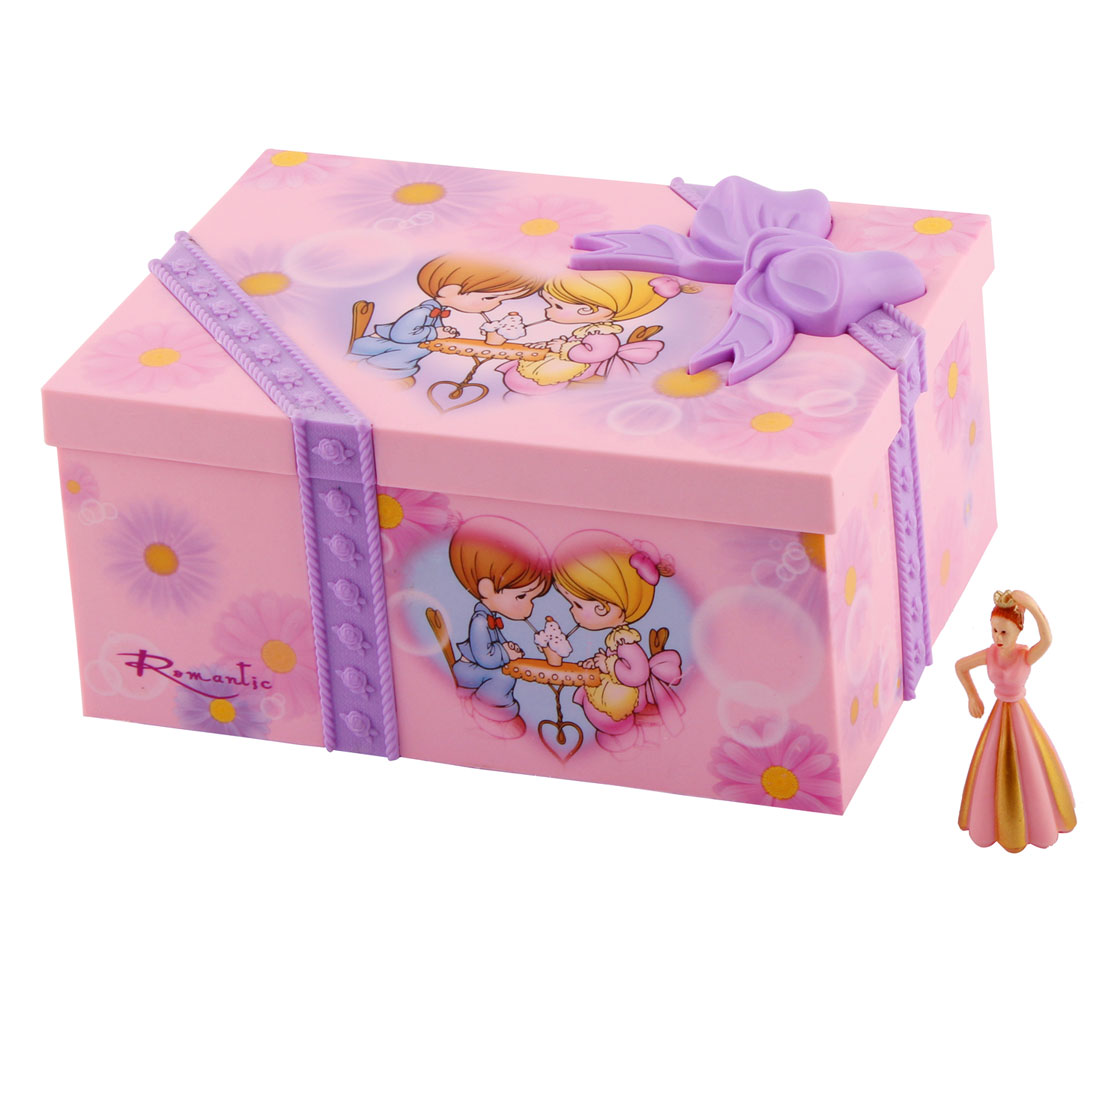 Home Plastic Musical Jewllery Box Case Holder Decoration Gift Pink